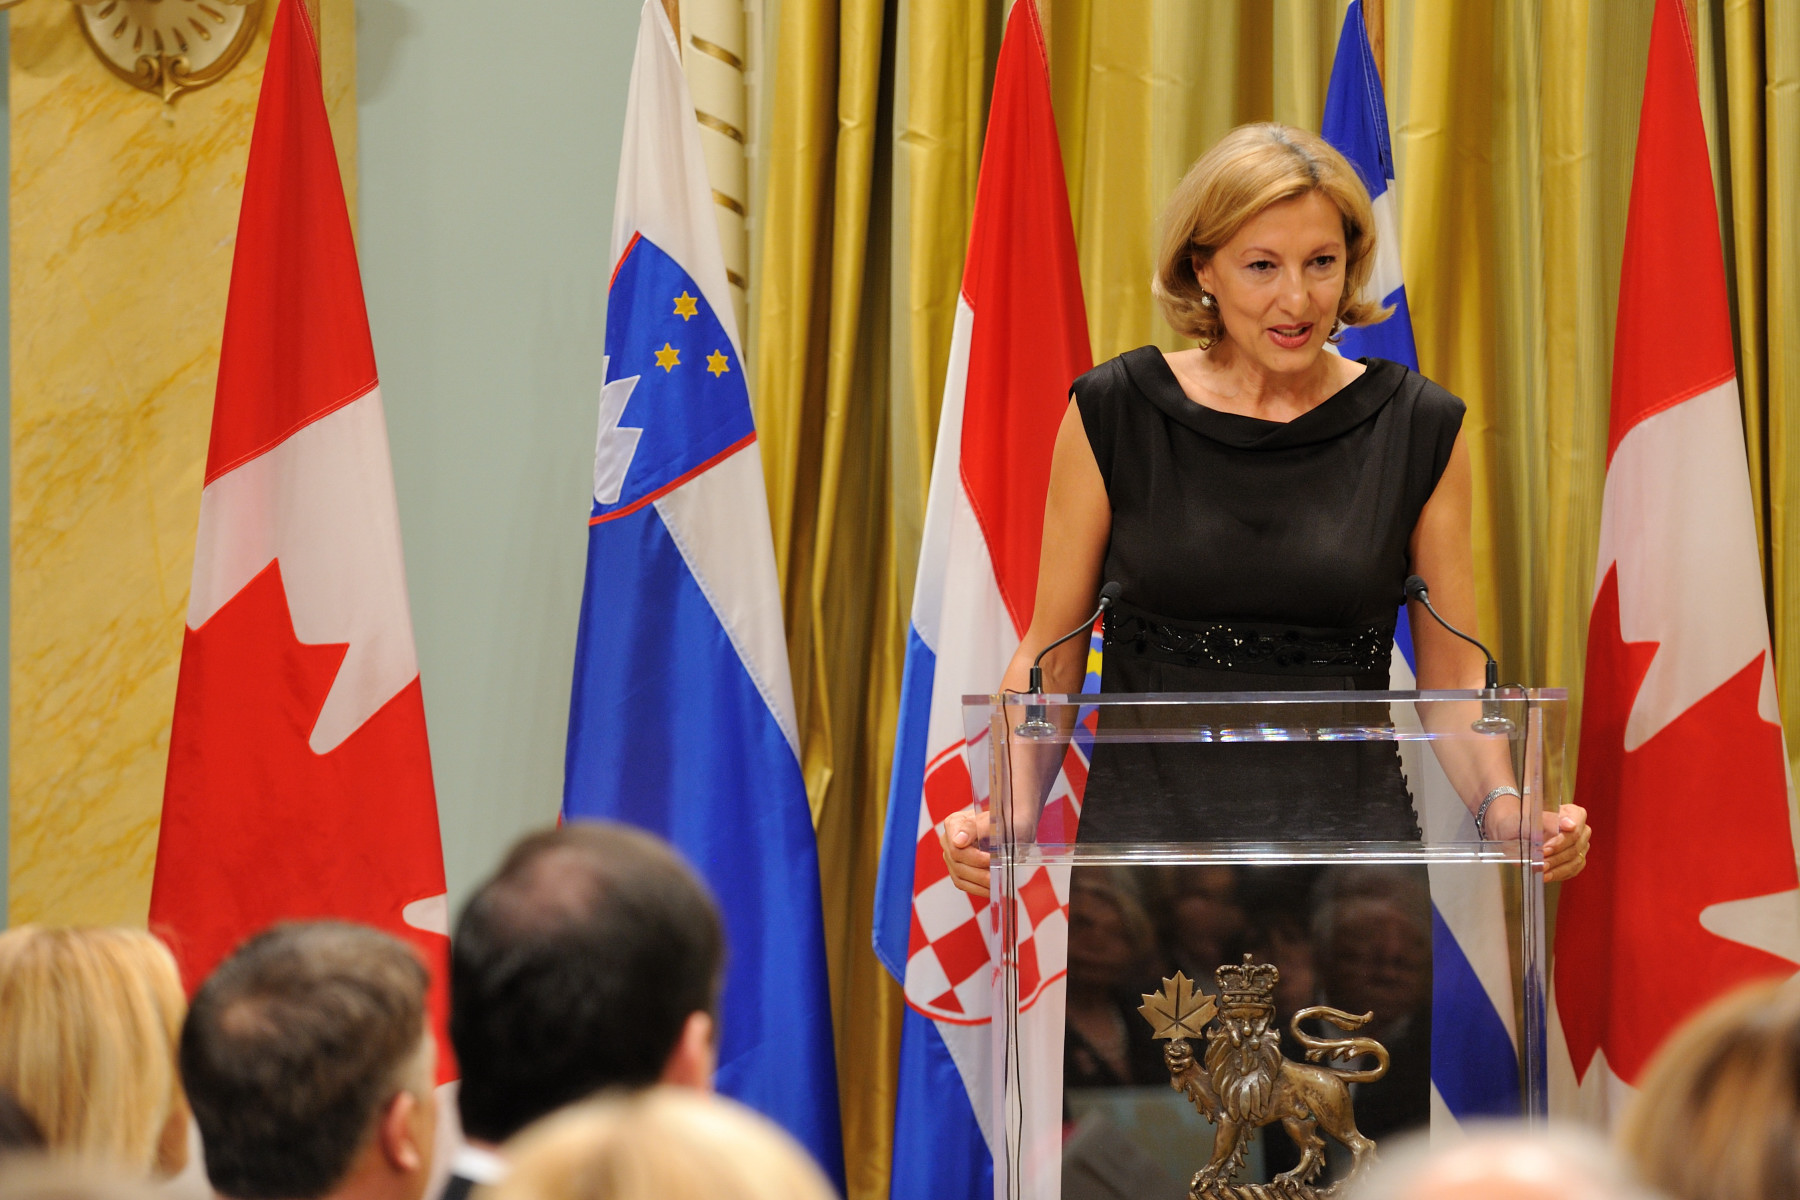 Her Excellency Vesela Mrdne Korac, Ambassador of Croatia to Canada, delivered remarks on the friendship between Canada and Croatia.